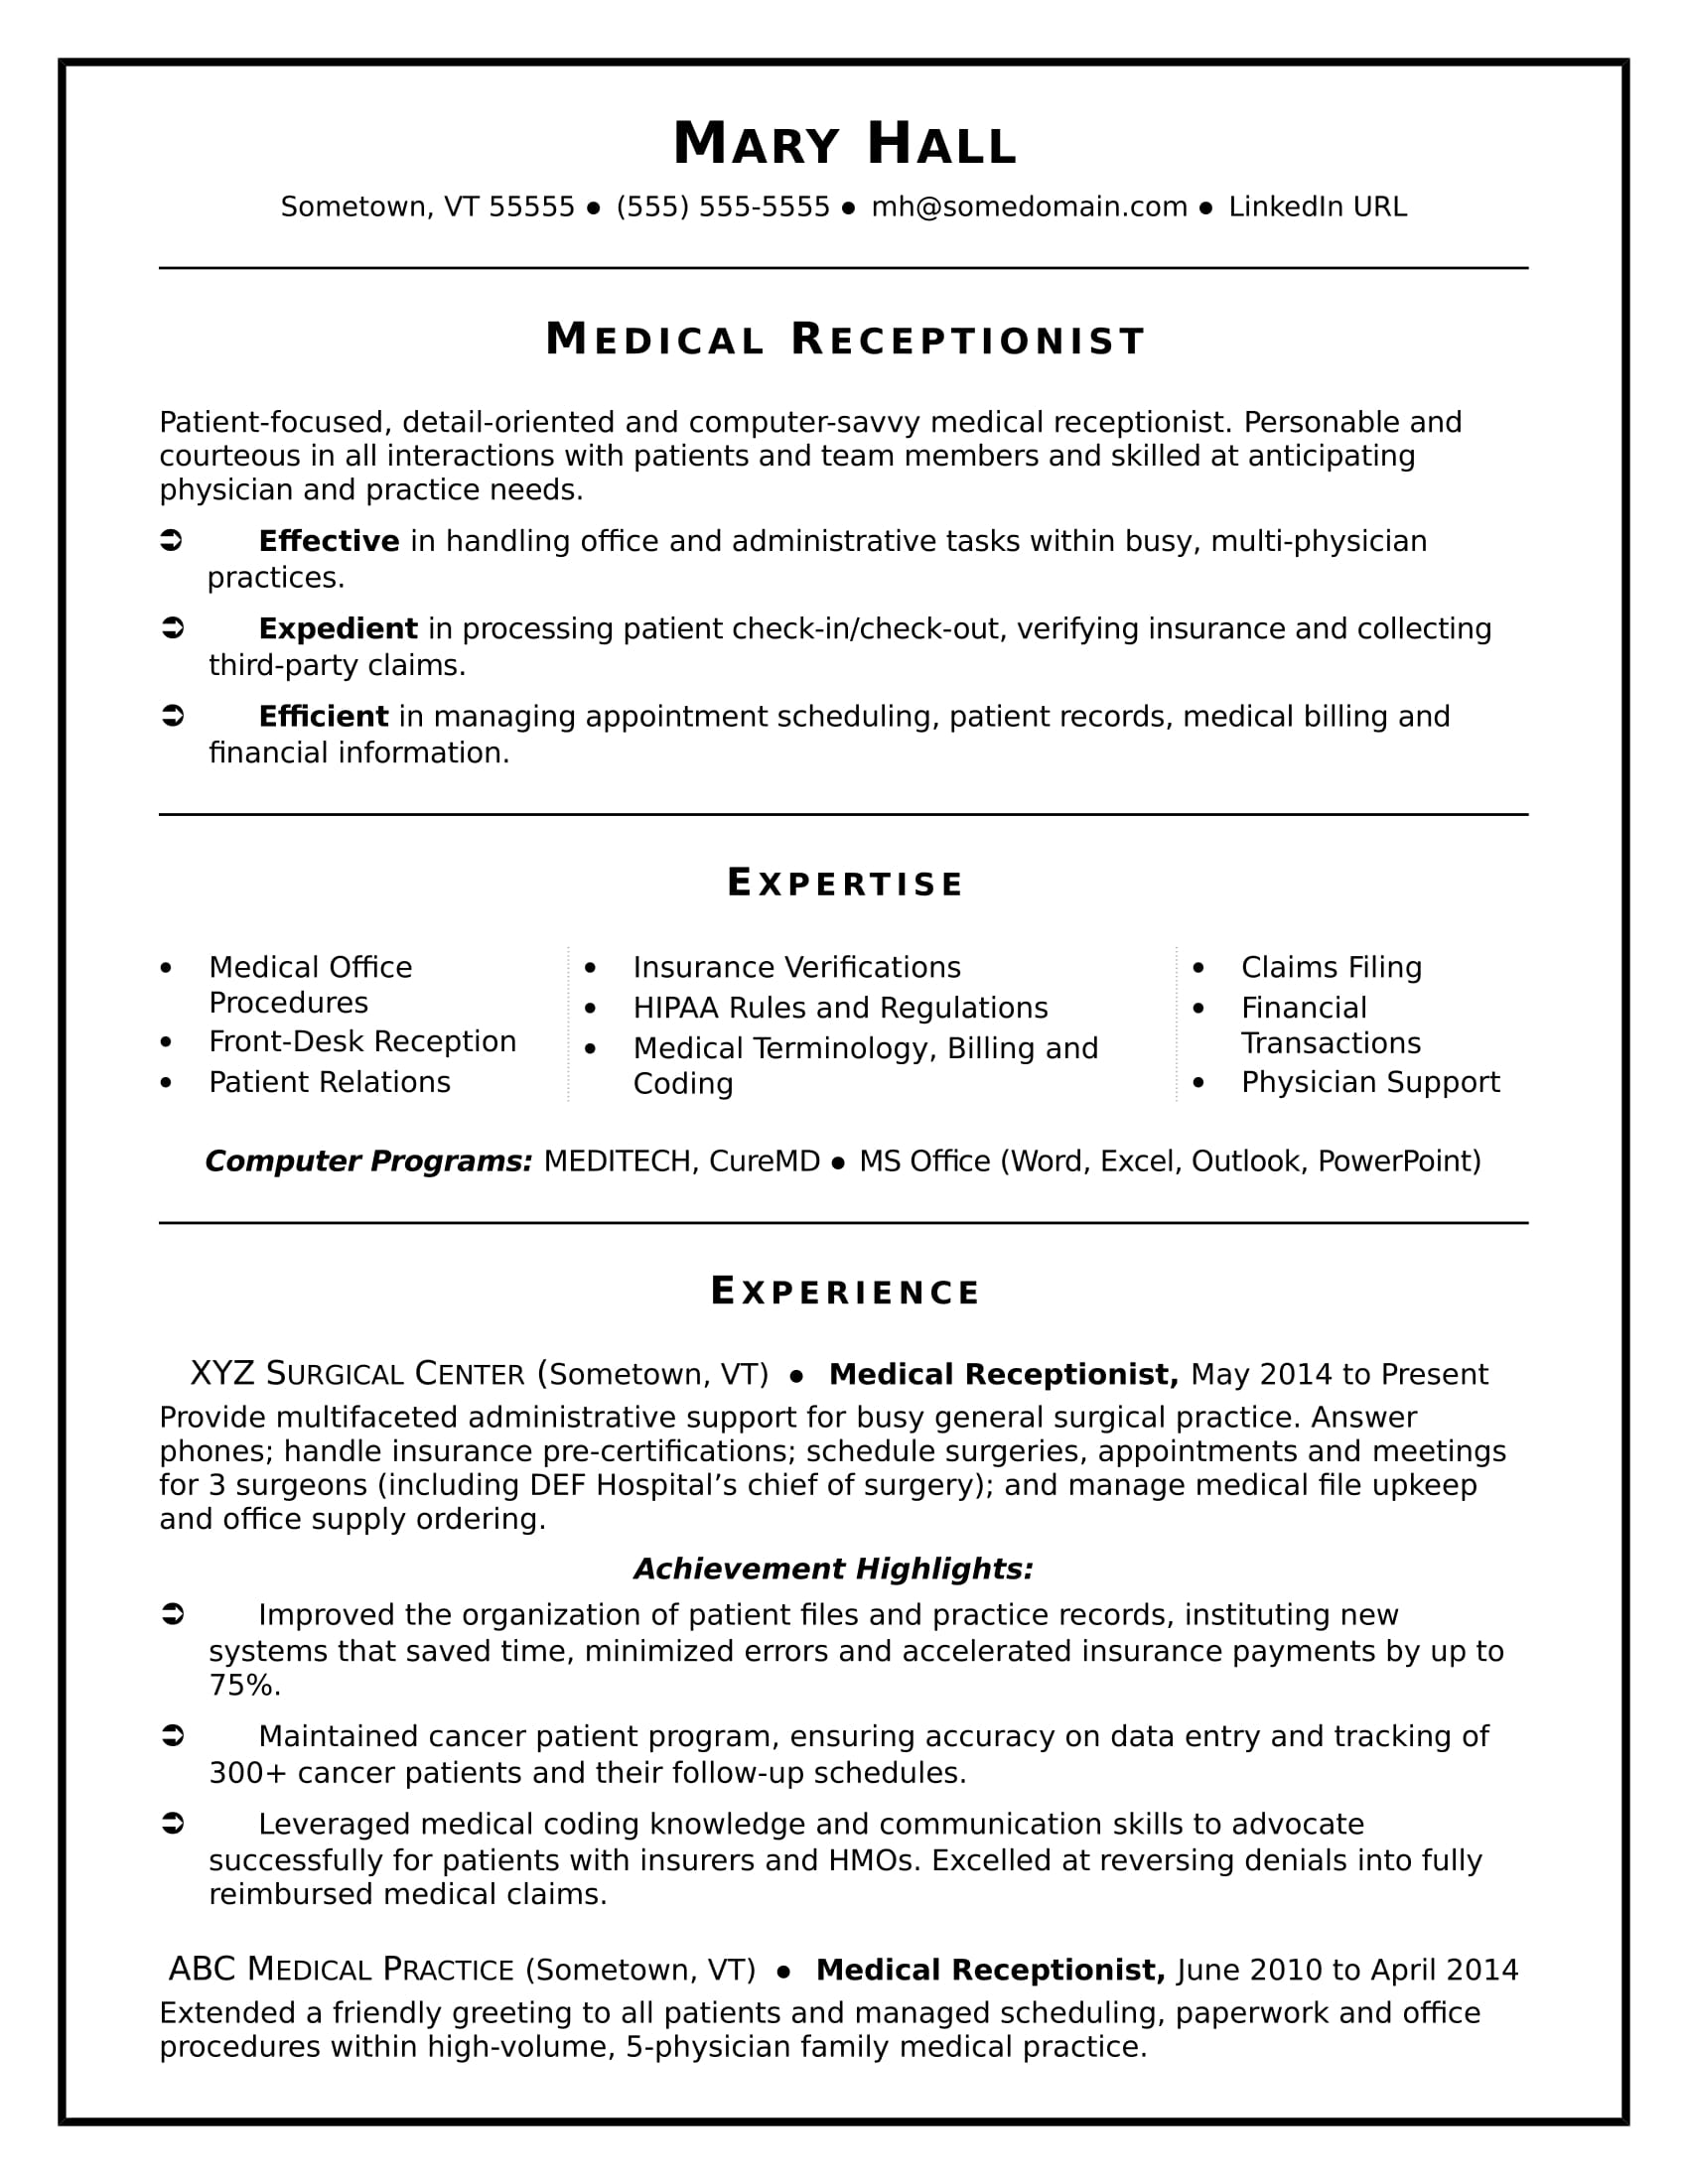 medical receptionist resume sample - Sample Medical Receptionist Resume